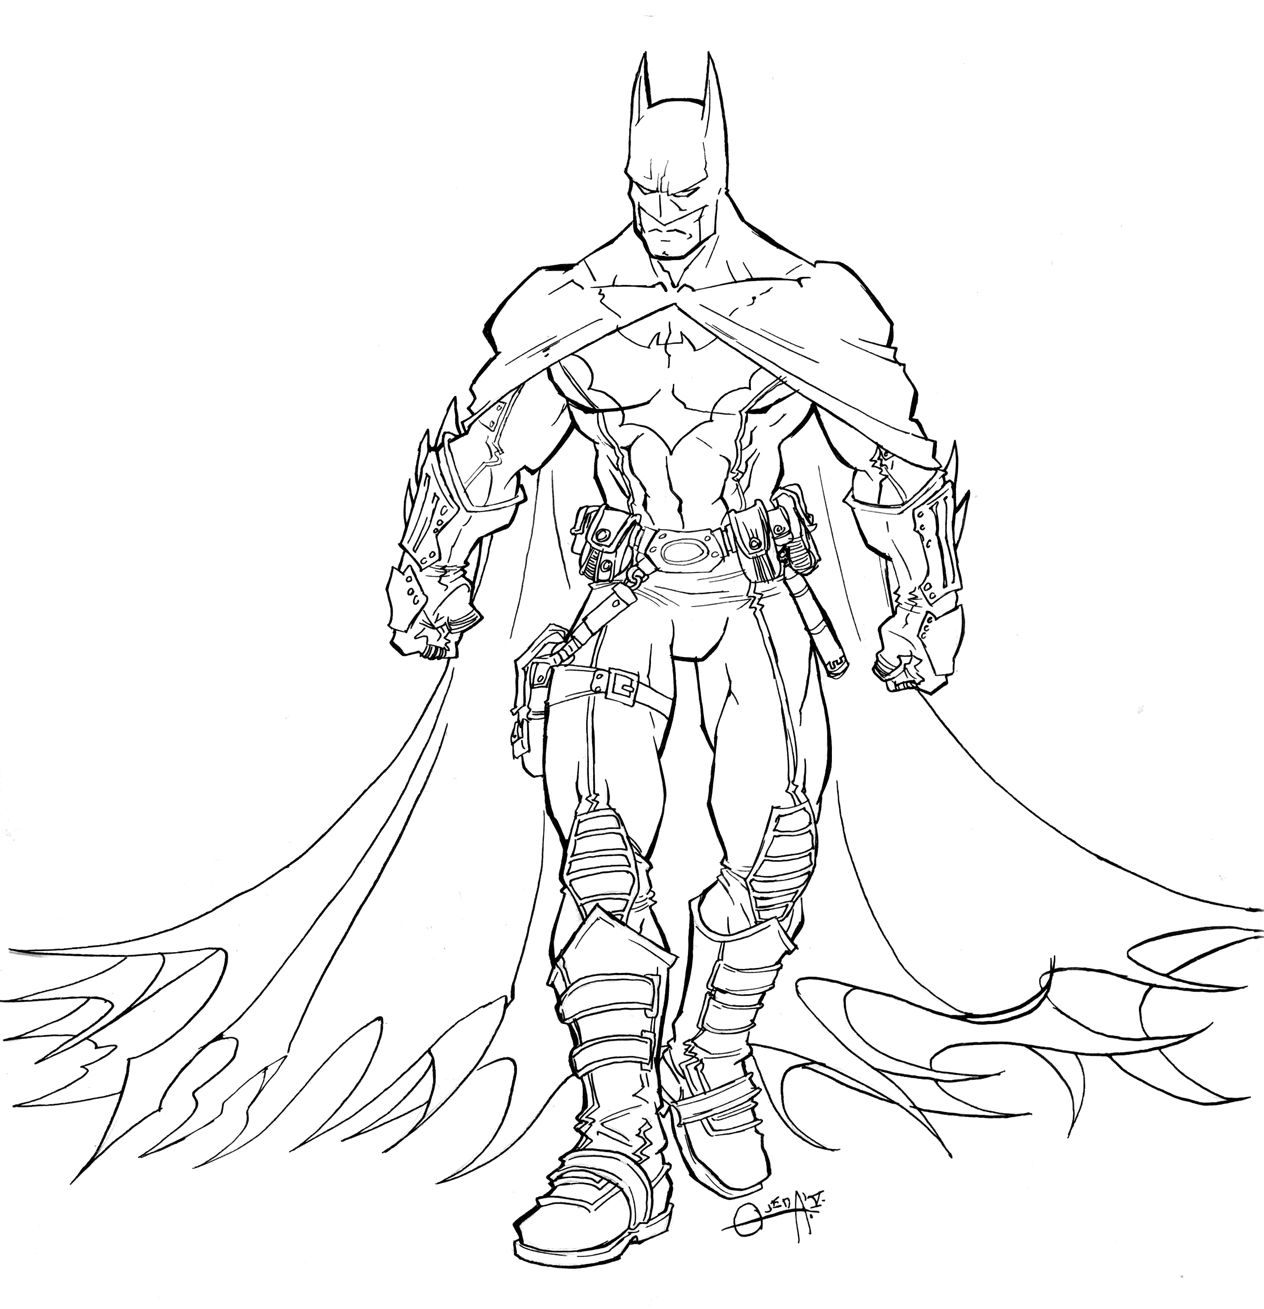 Batman coloring page to print and color